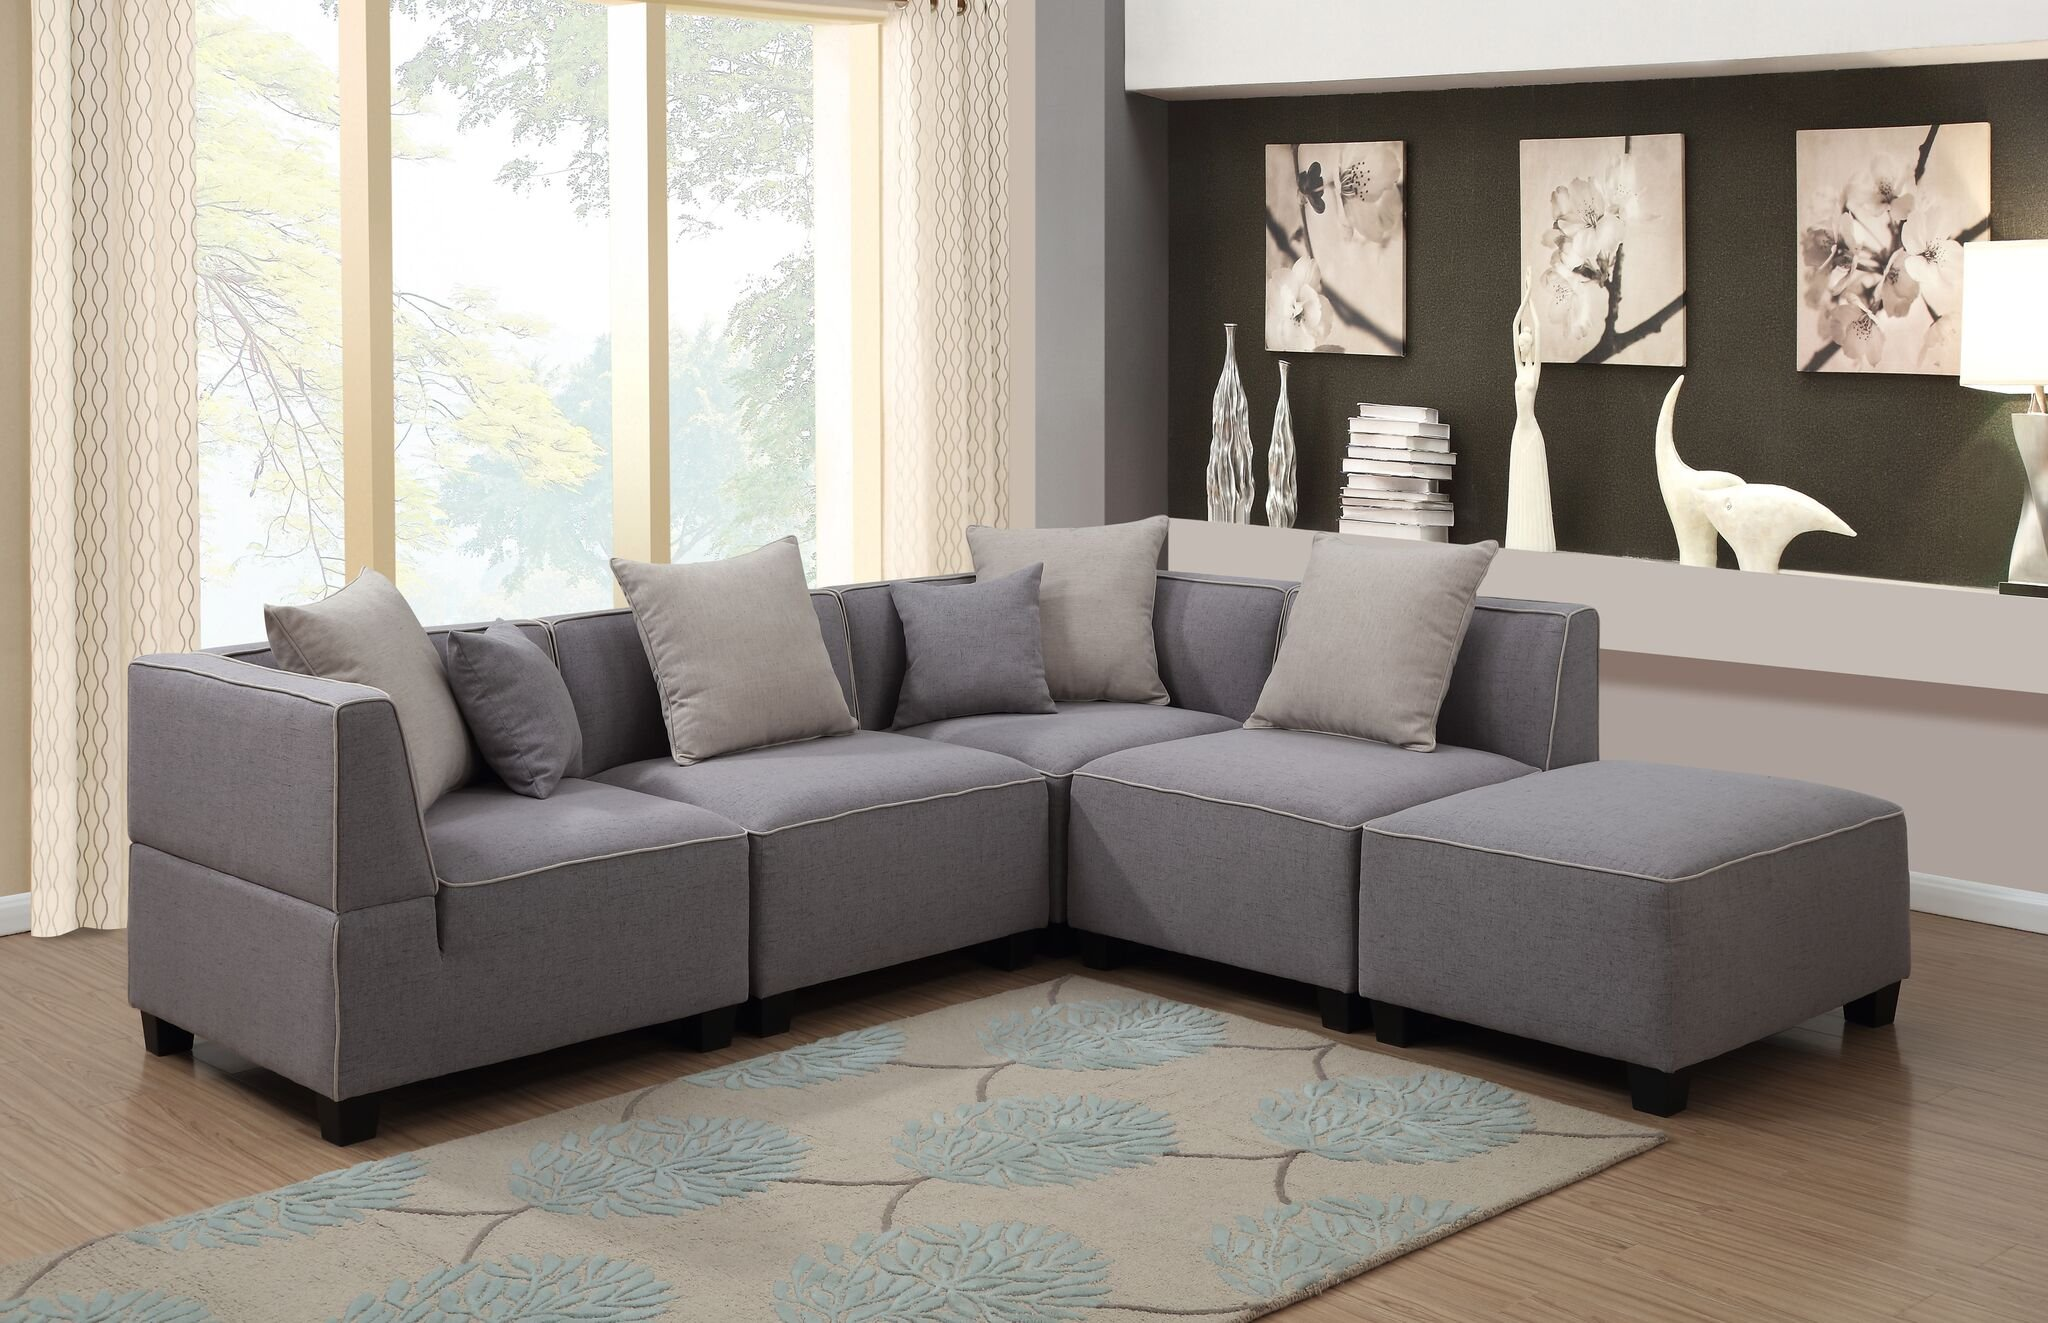 AC Pacific 5 Piece Holly Collection Modern Linen Fabric Upholstered L-Shaped Living Room Tuxedo Sectional Sofa and Ottoman, Grey by AC Pacific